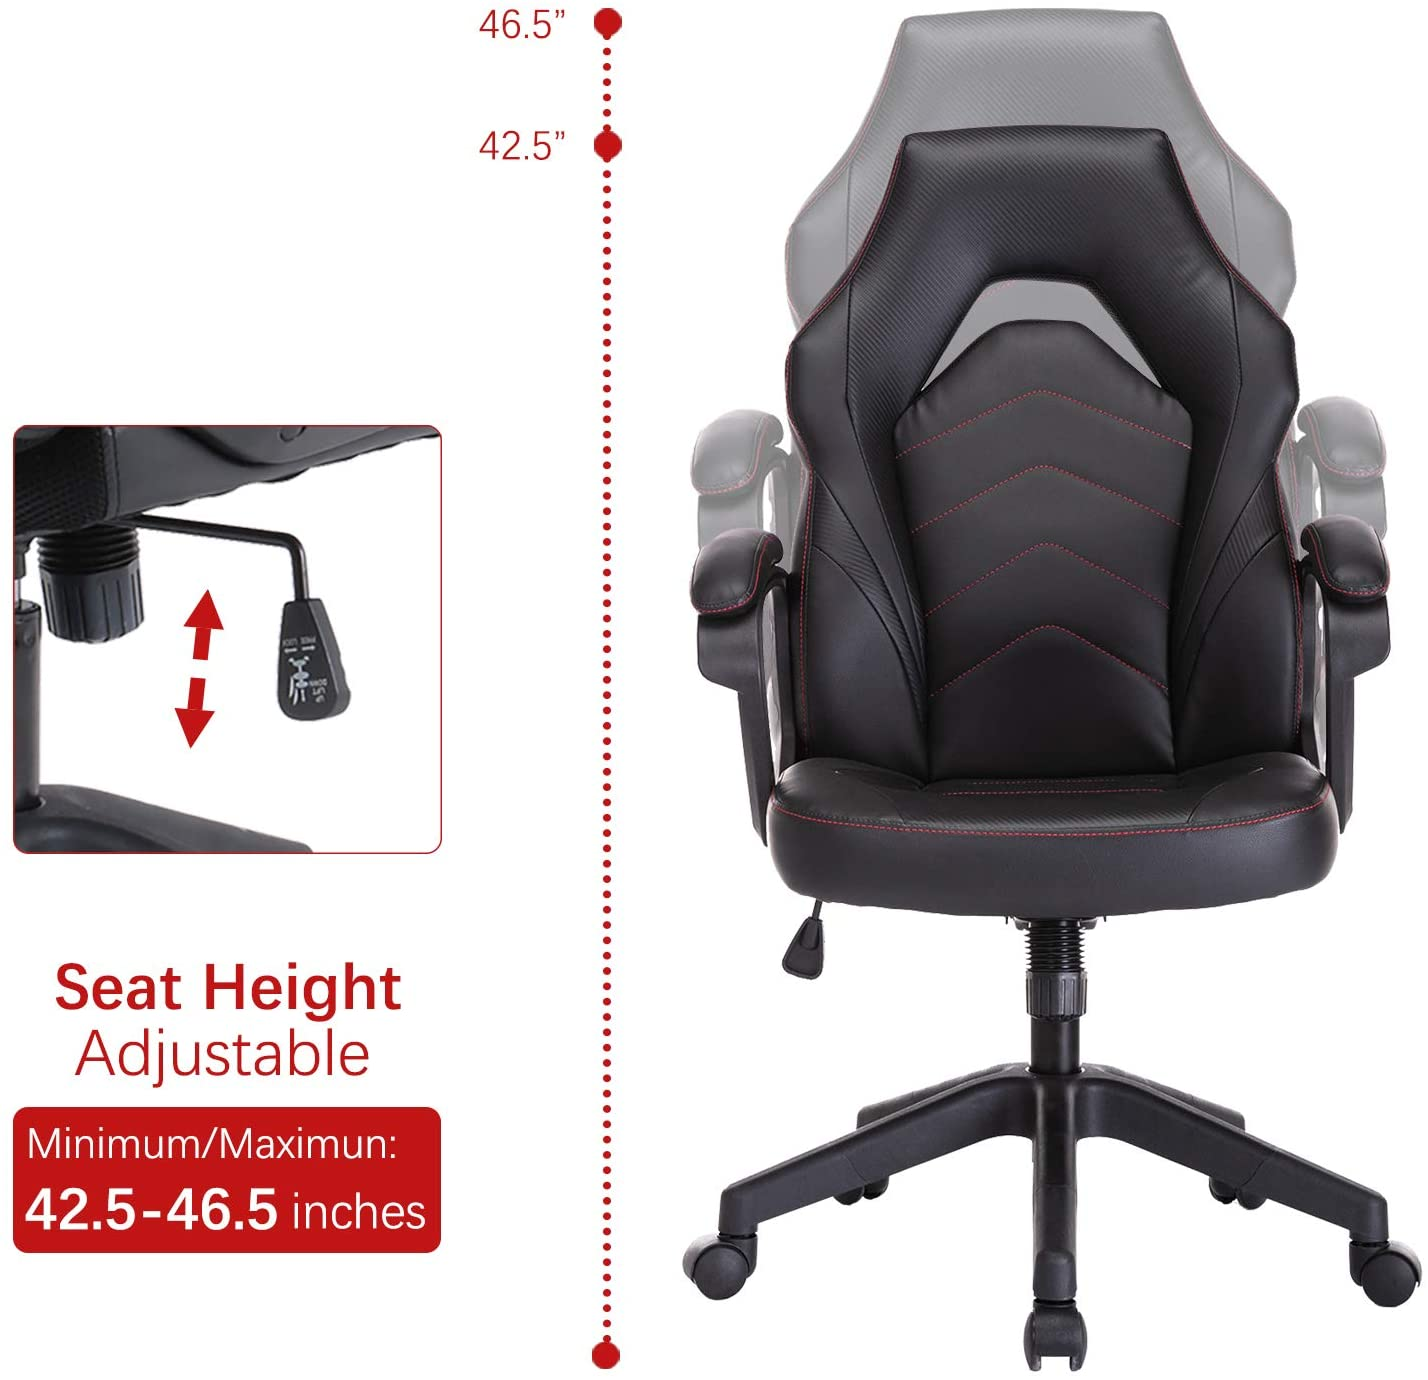 SMUGDESK Racing Gaming Chair Executive Bonded Leather Computer Office Chair with Massage and Padding Armrest